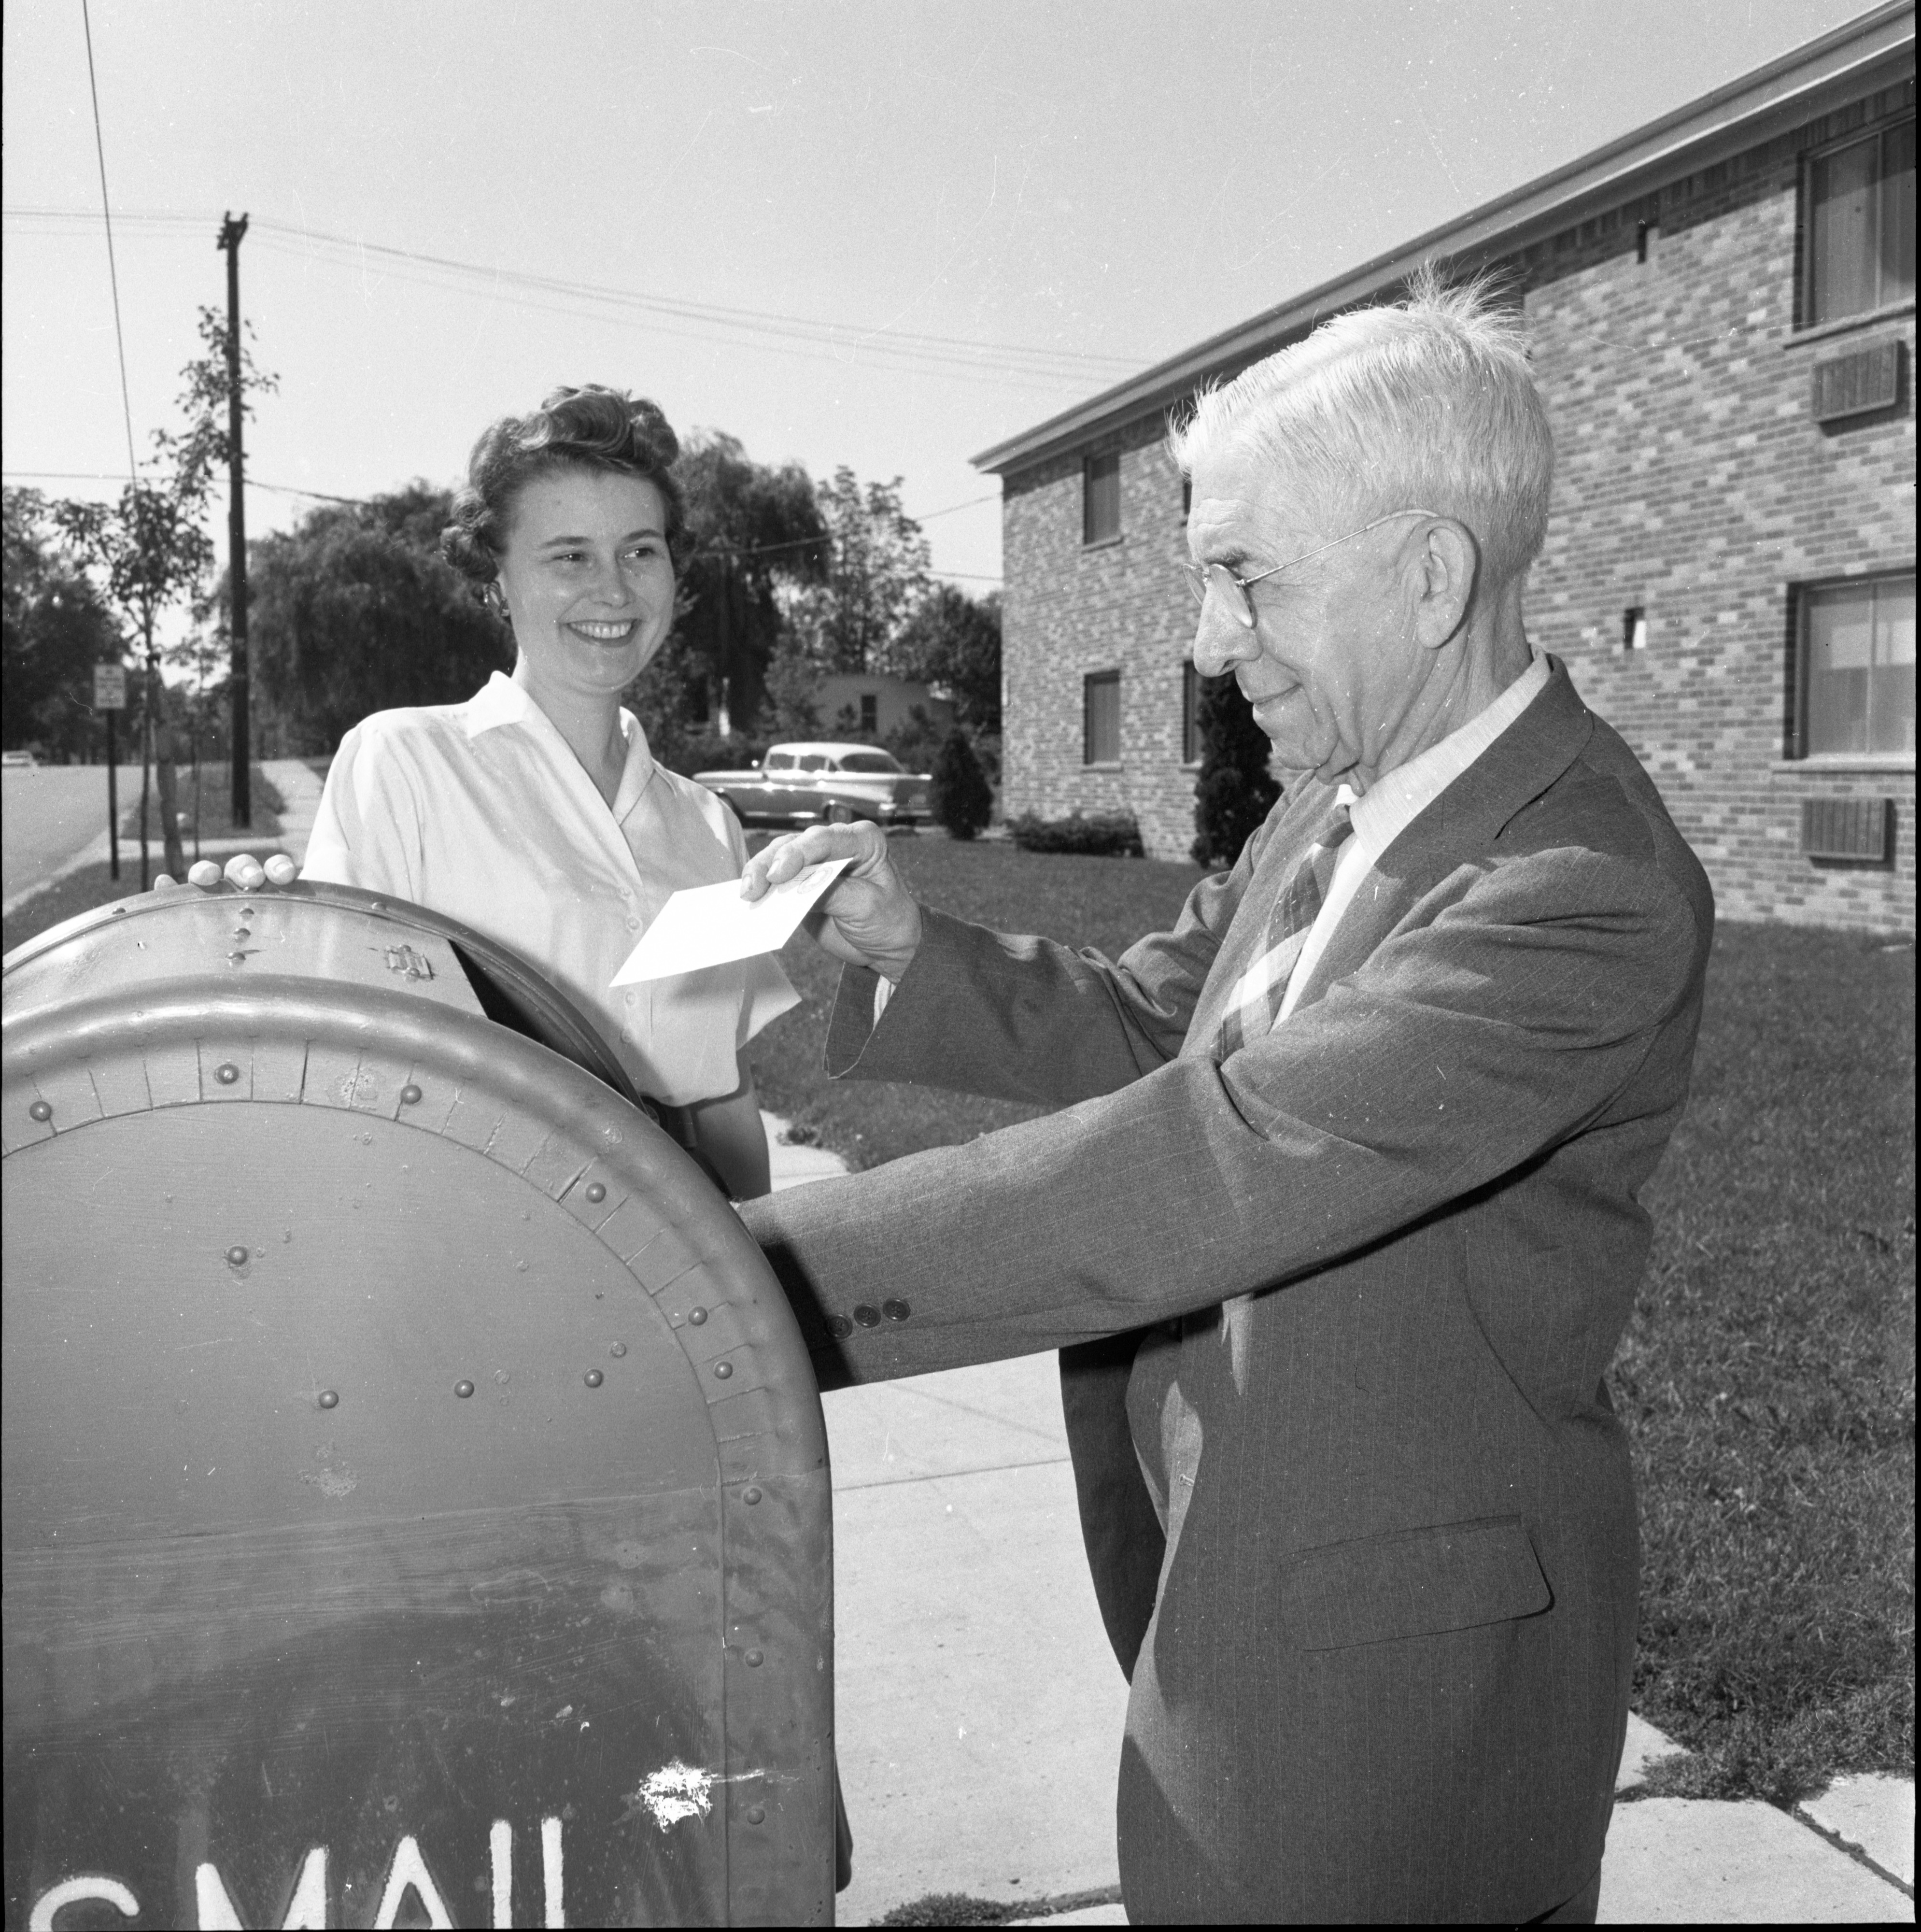 Dr. John F. Shepard Drops A Financial Contribution For The Ann Arbor League Of Women Voters Into A Mailbox, September 1962 image